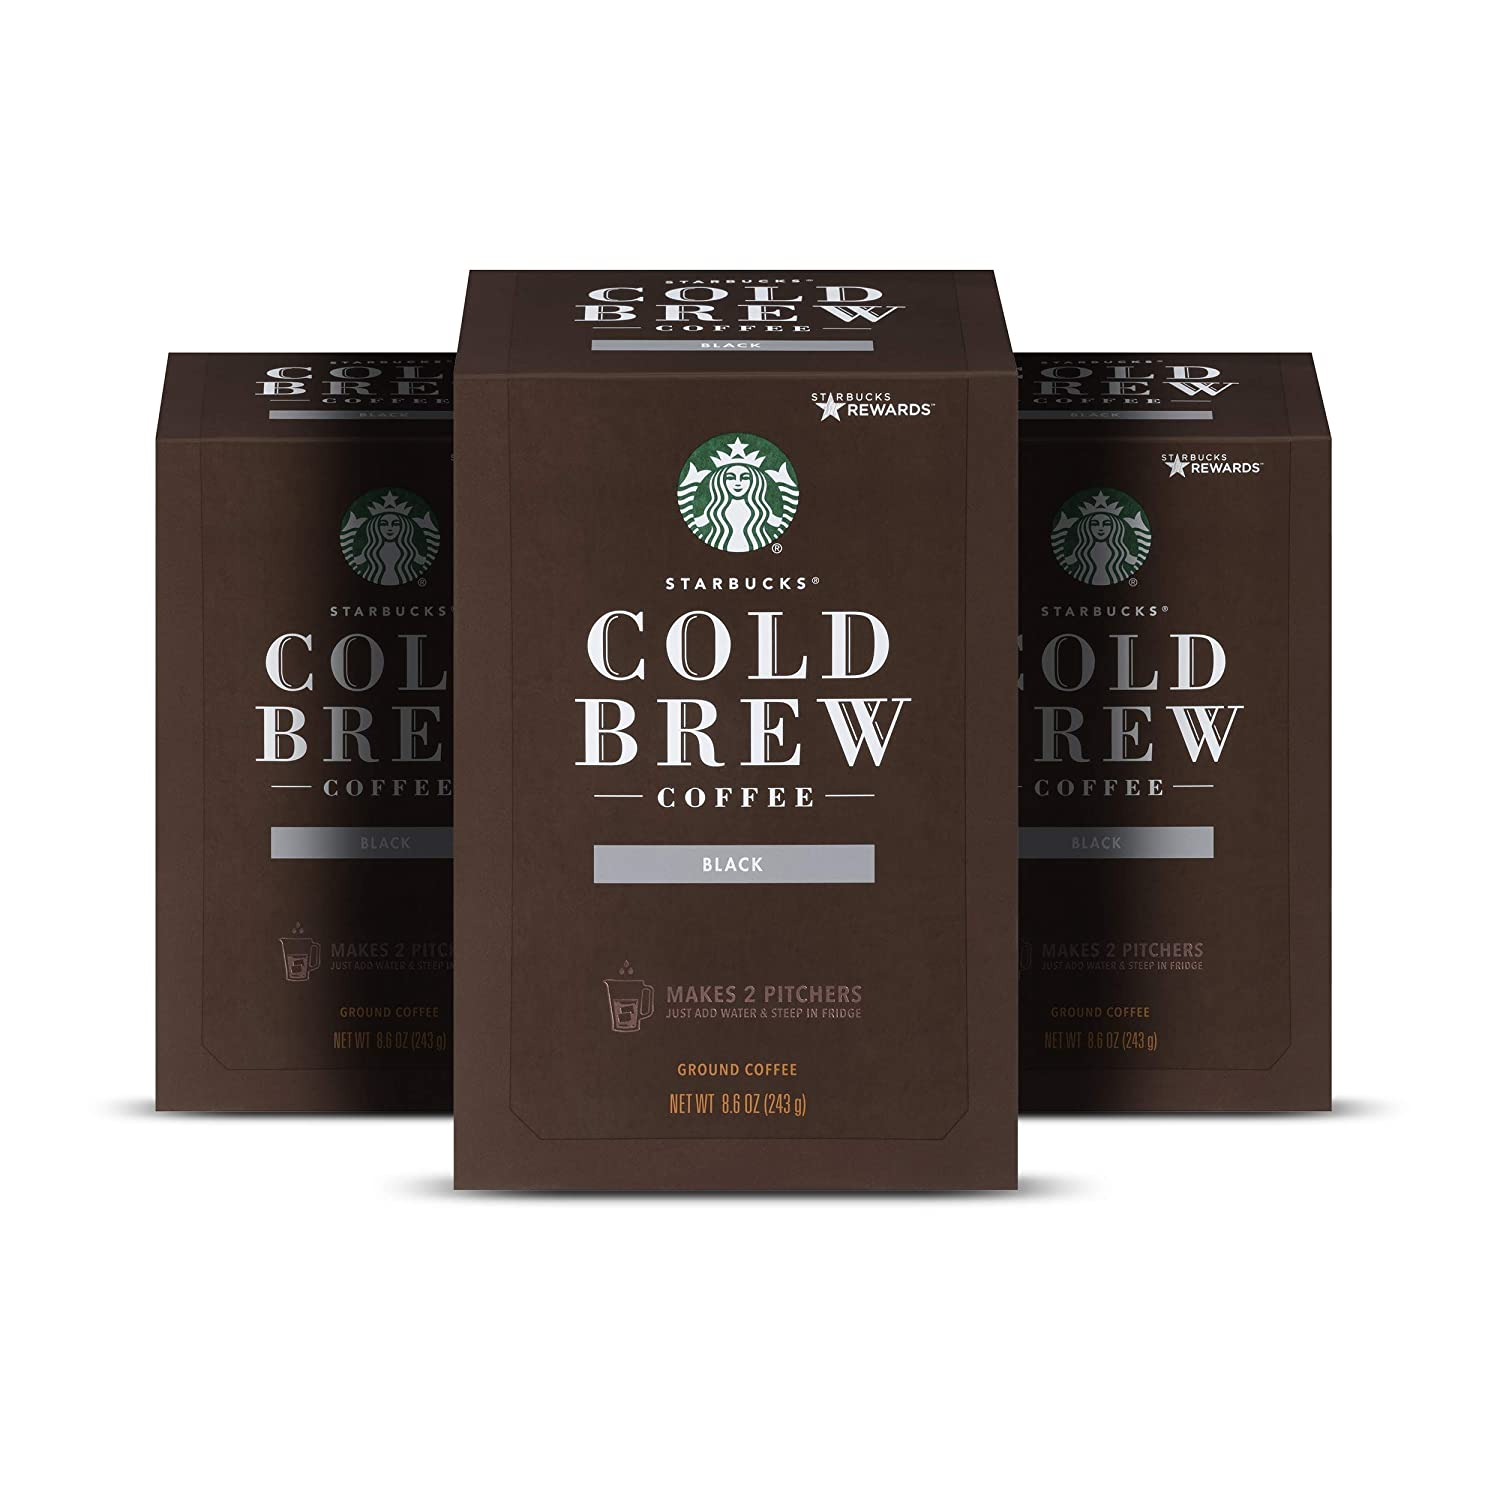 Starbucks Cold Brew Coffee, Medium Roast Coffee, 8.6 Oz., 3 boxes makes 6 pitchers